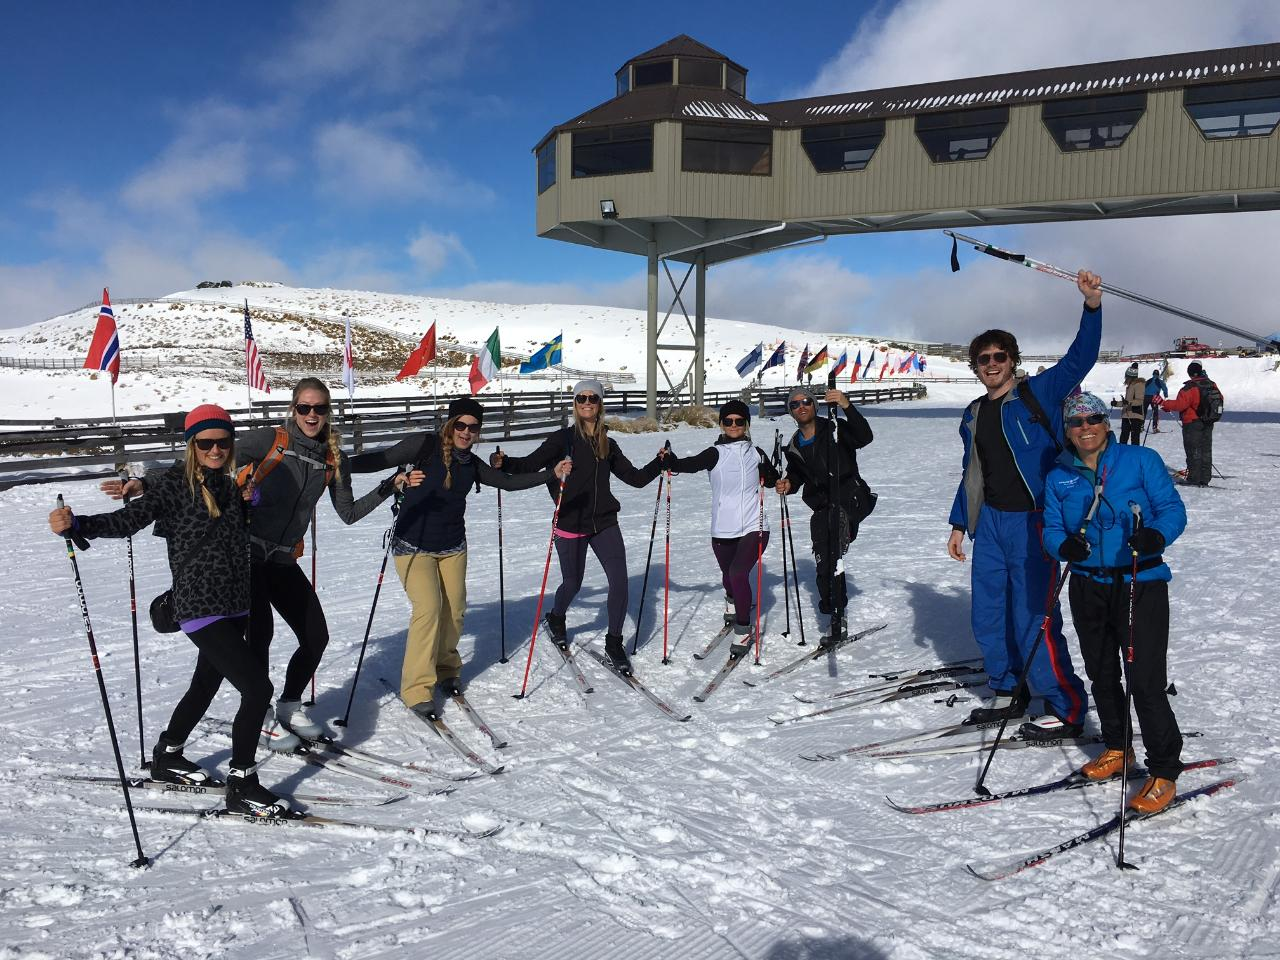 Half-Day Cross-Country Ski Experience